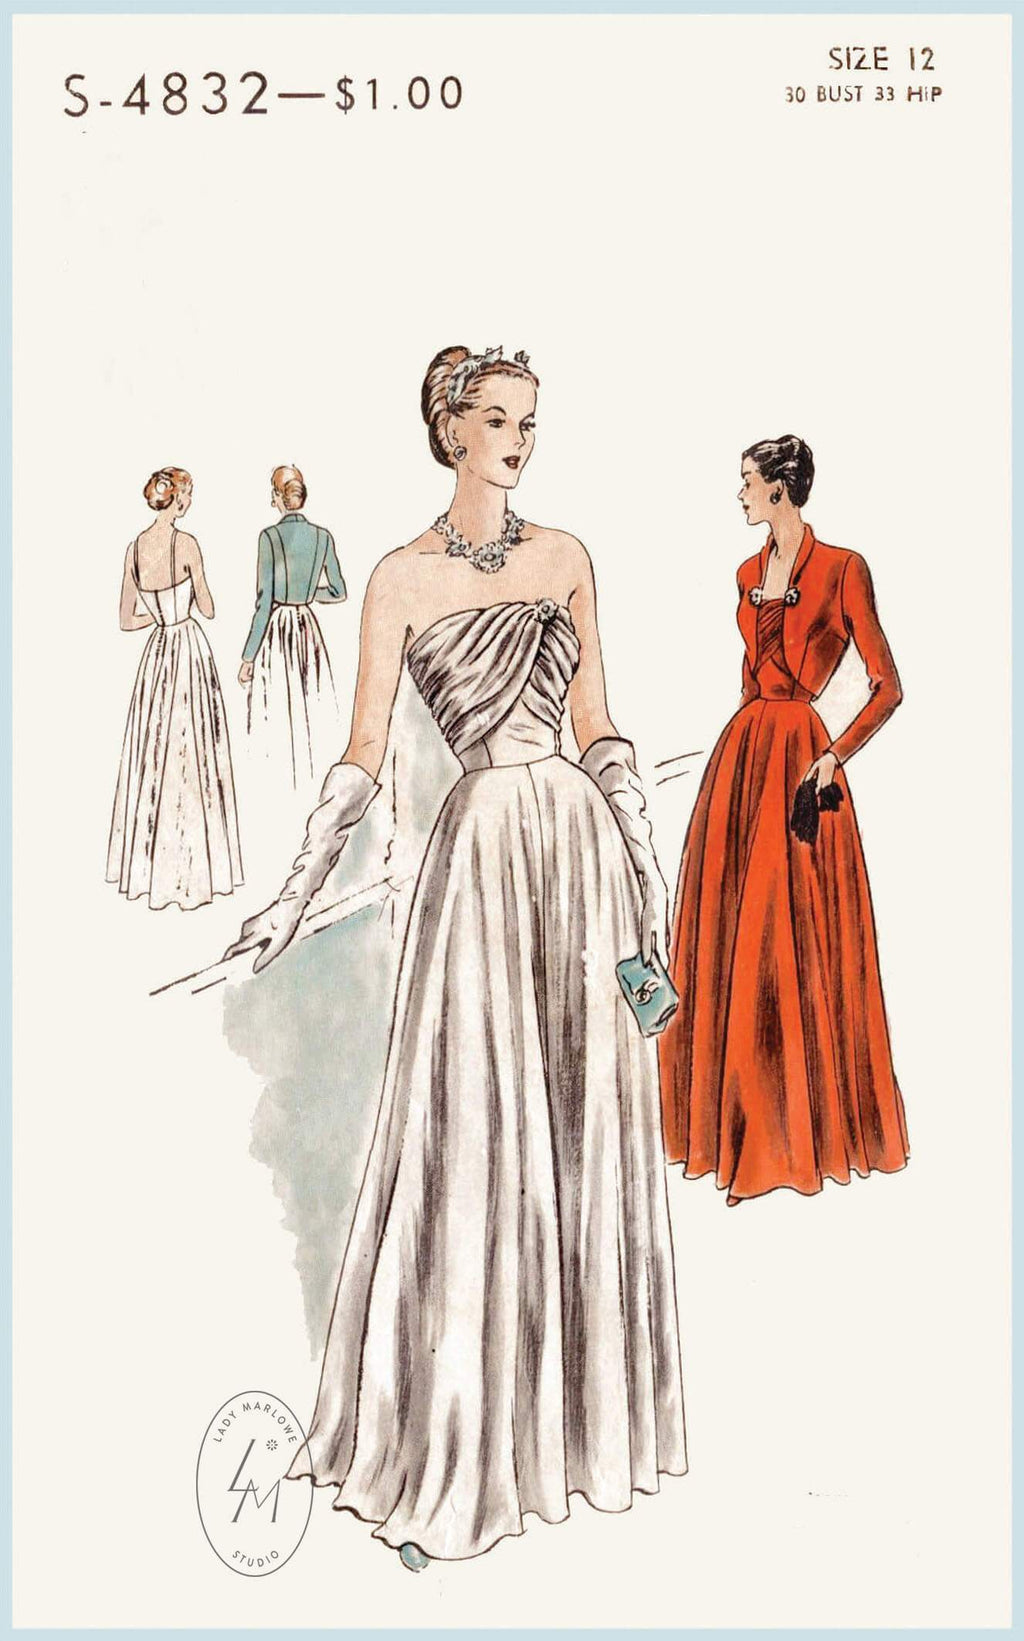 Vogue S-4932 1940s evening gown vintage sewing pattern